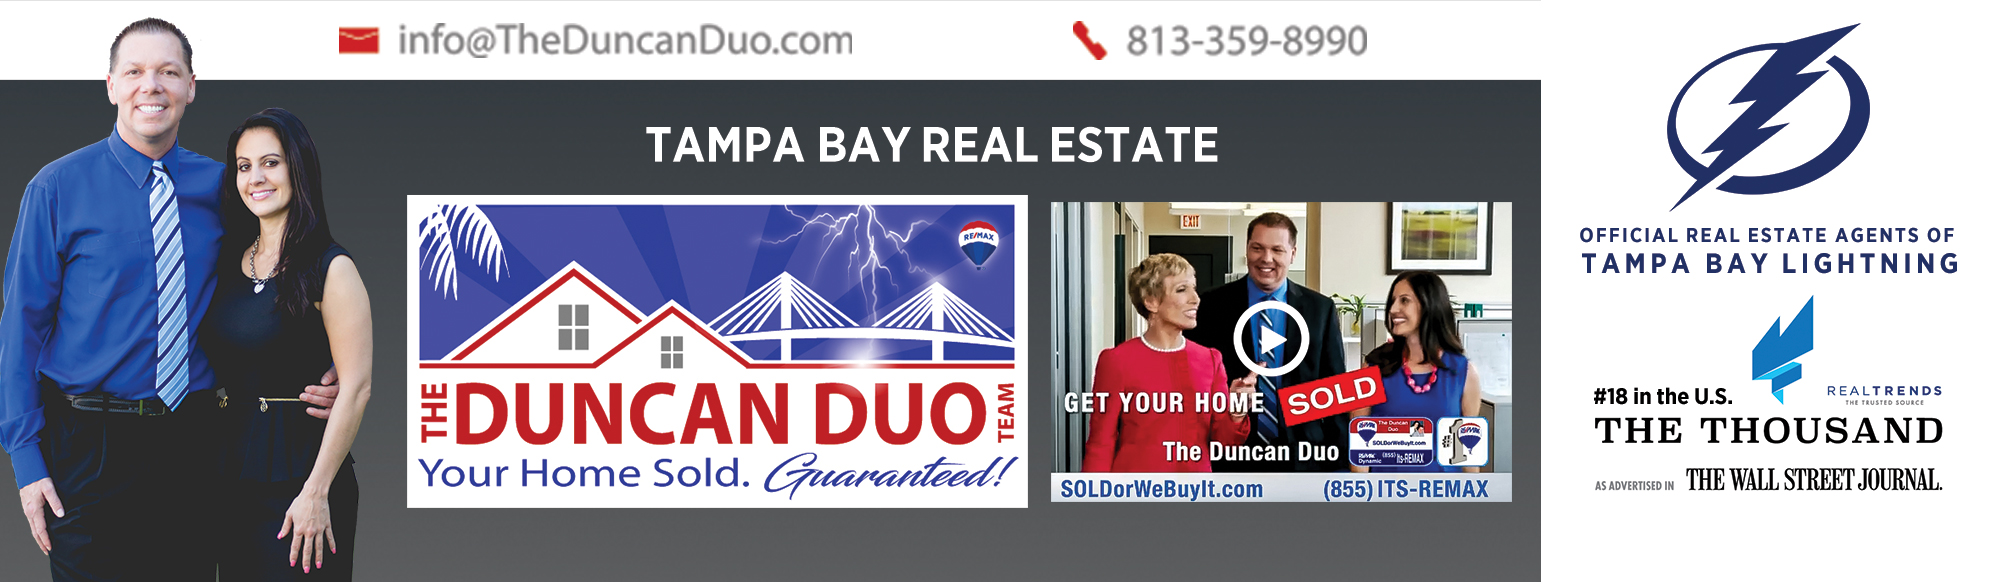 Tampa Bay flooded with brand new agents & they should be careful about where they start